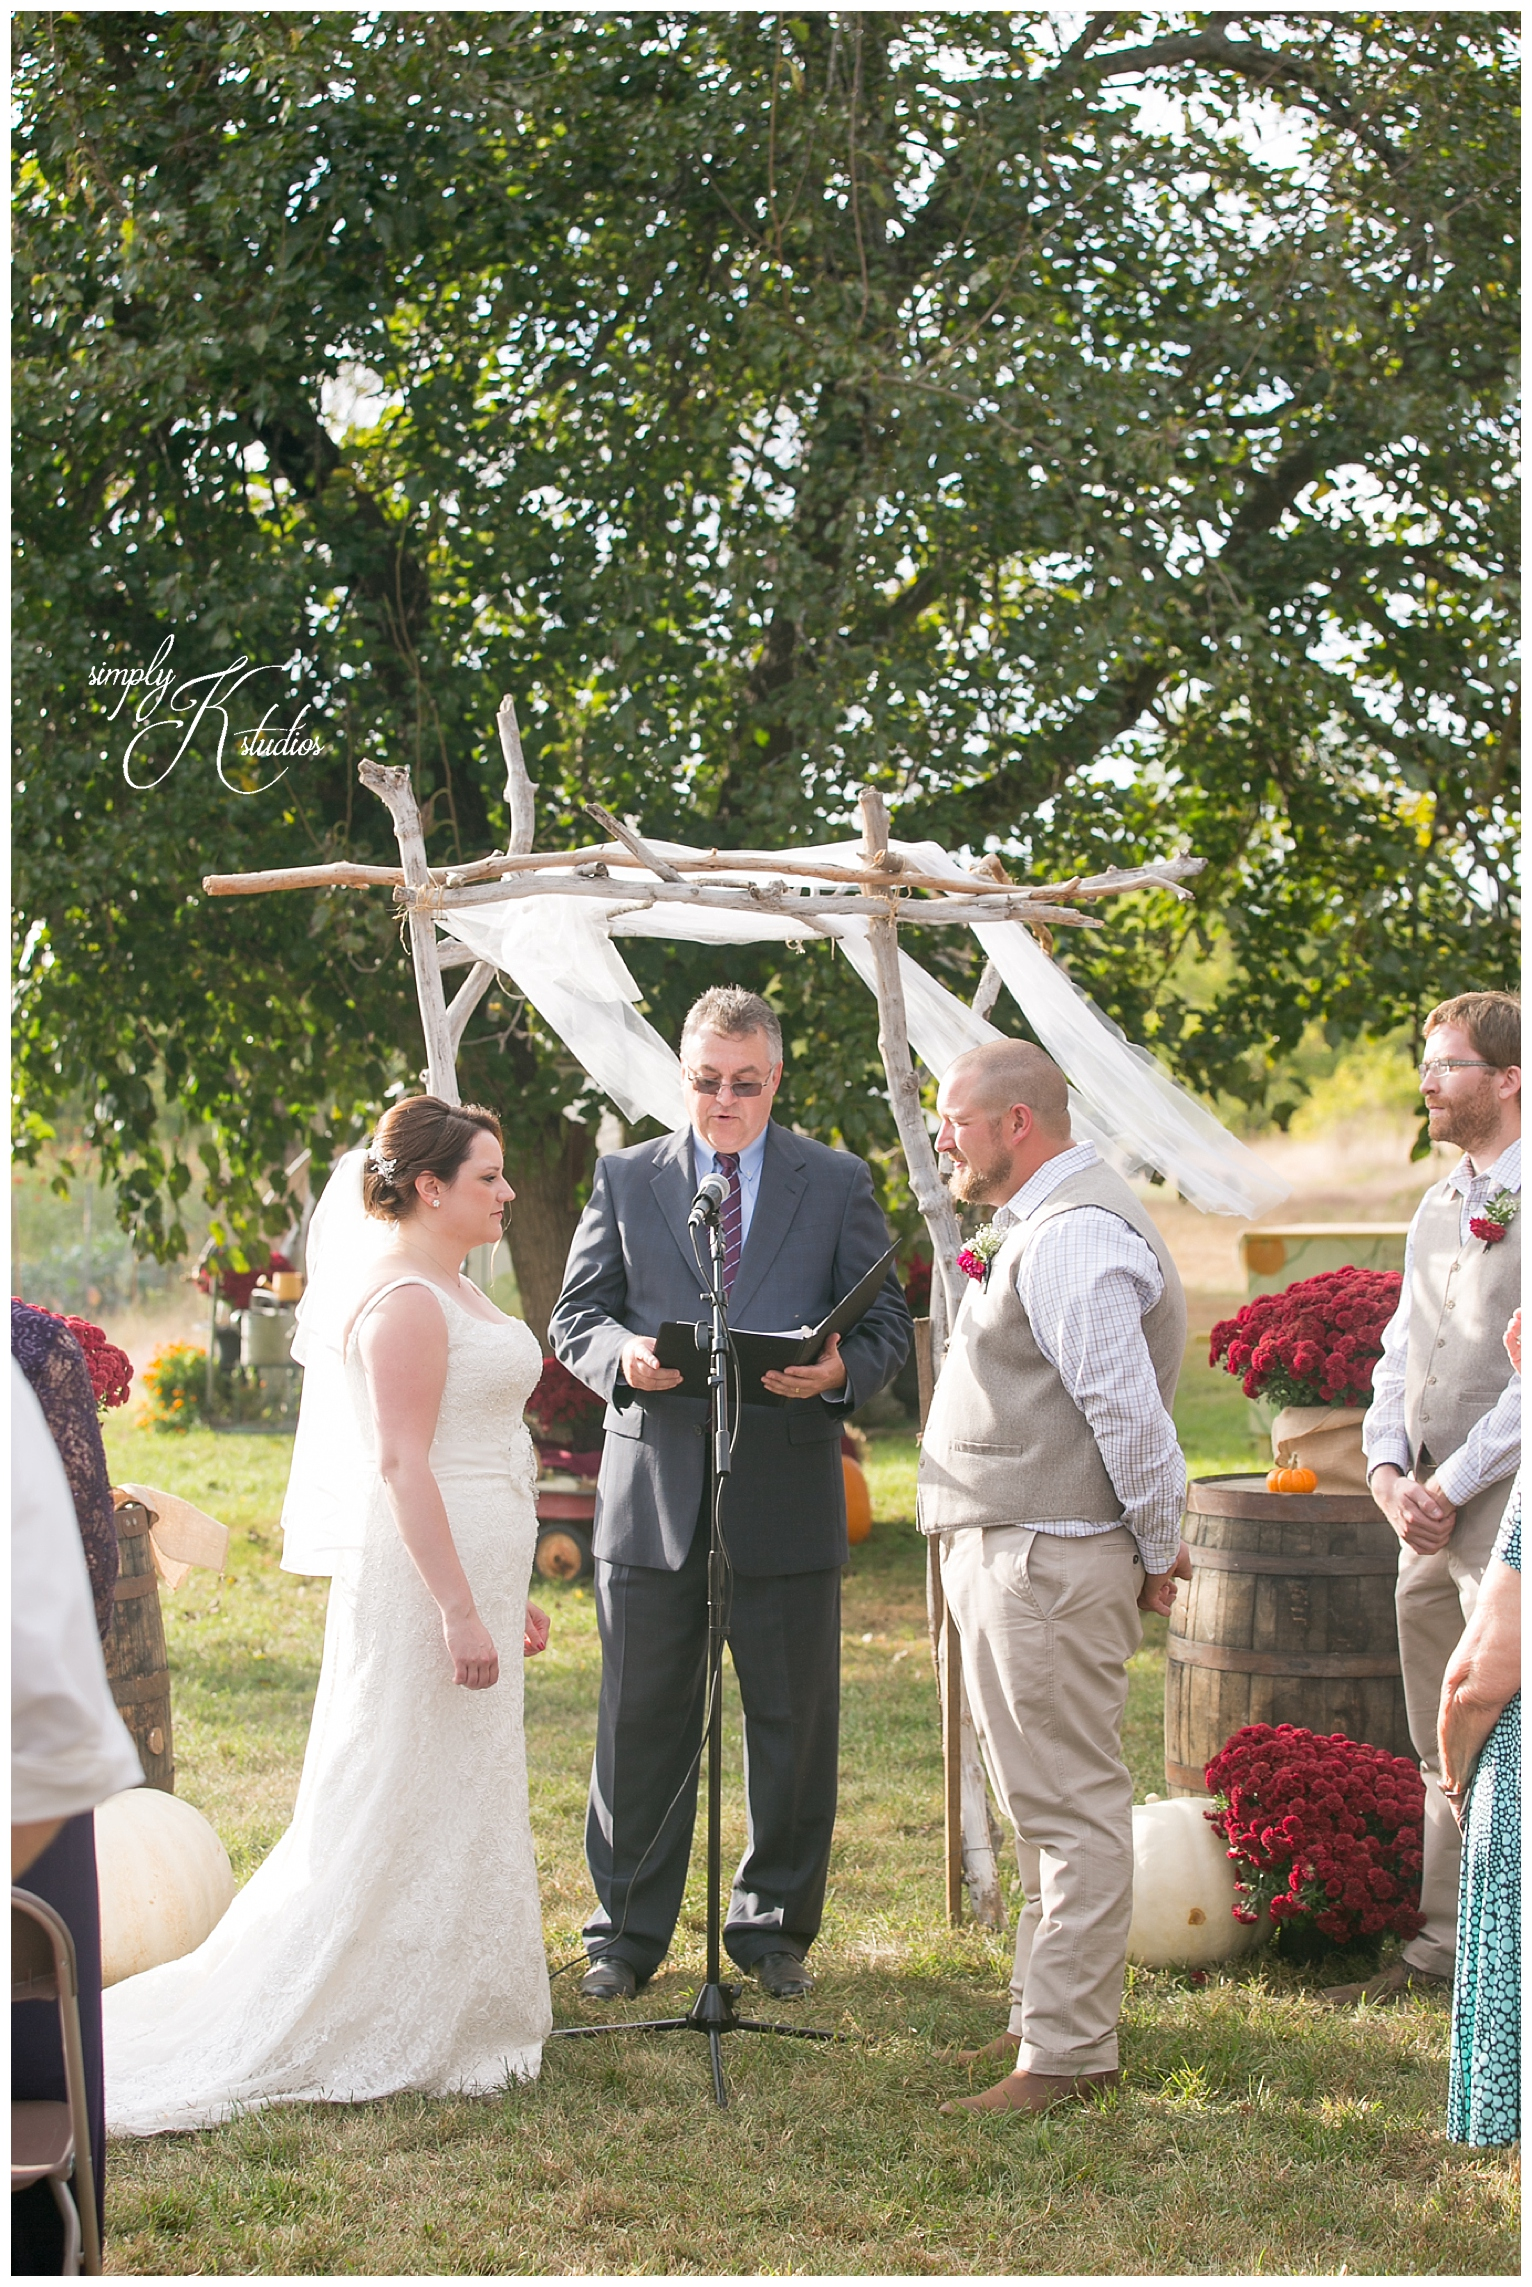 Venues for an outdoor fall wedding in New England.jpg